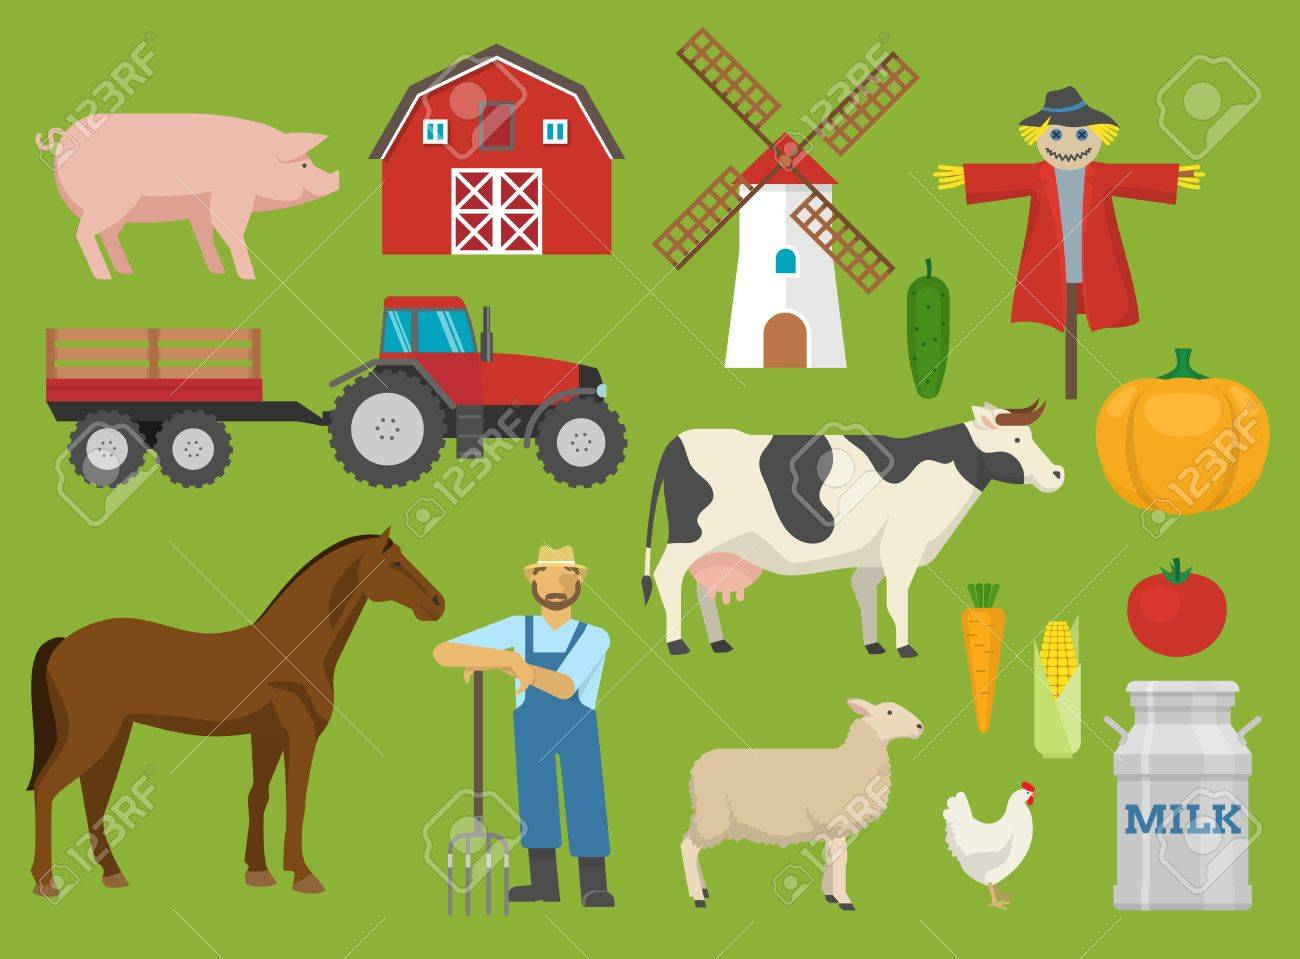 Farm Decorative Flat Icons Set With Barn Tractor Mill Animals Worker On Green Background Isolated Vector